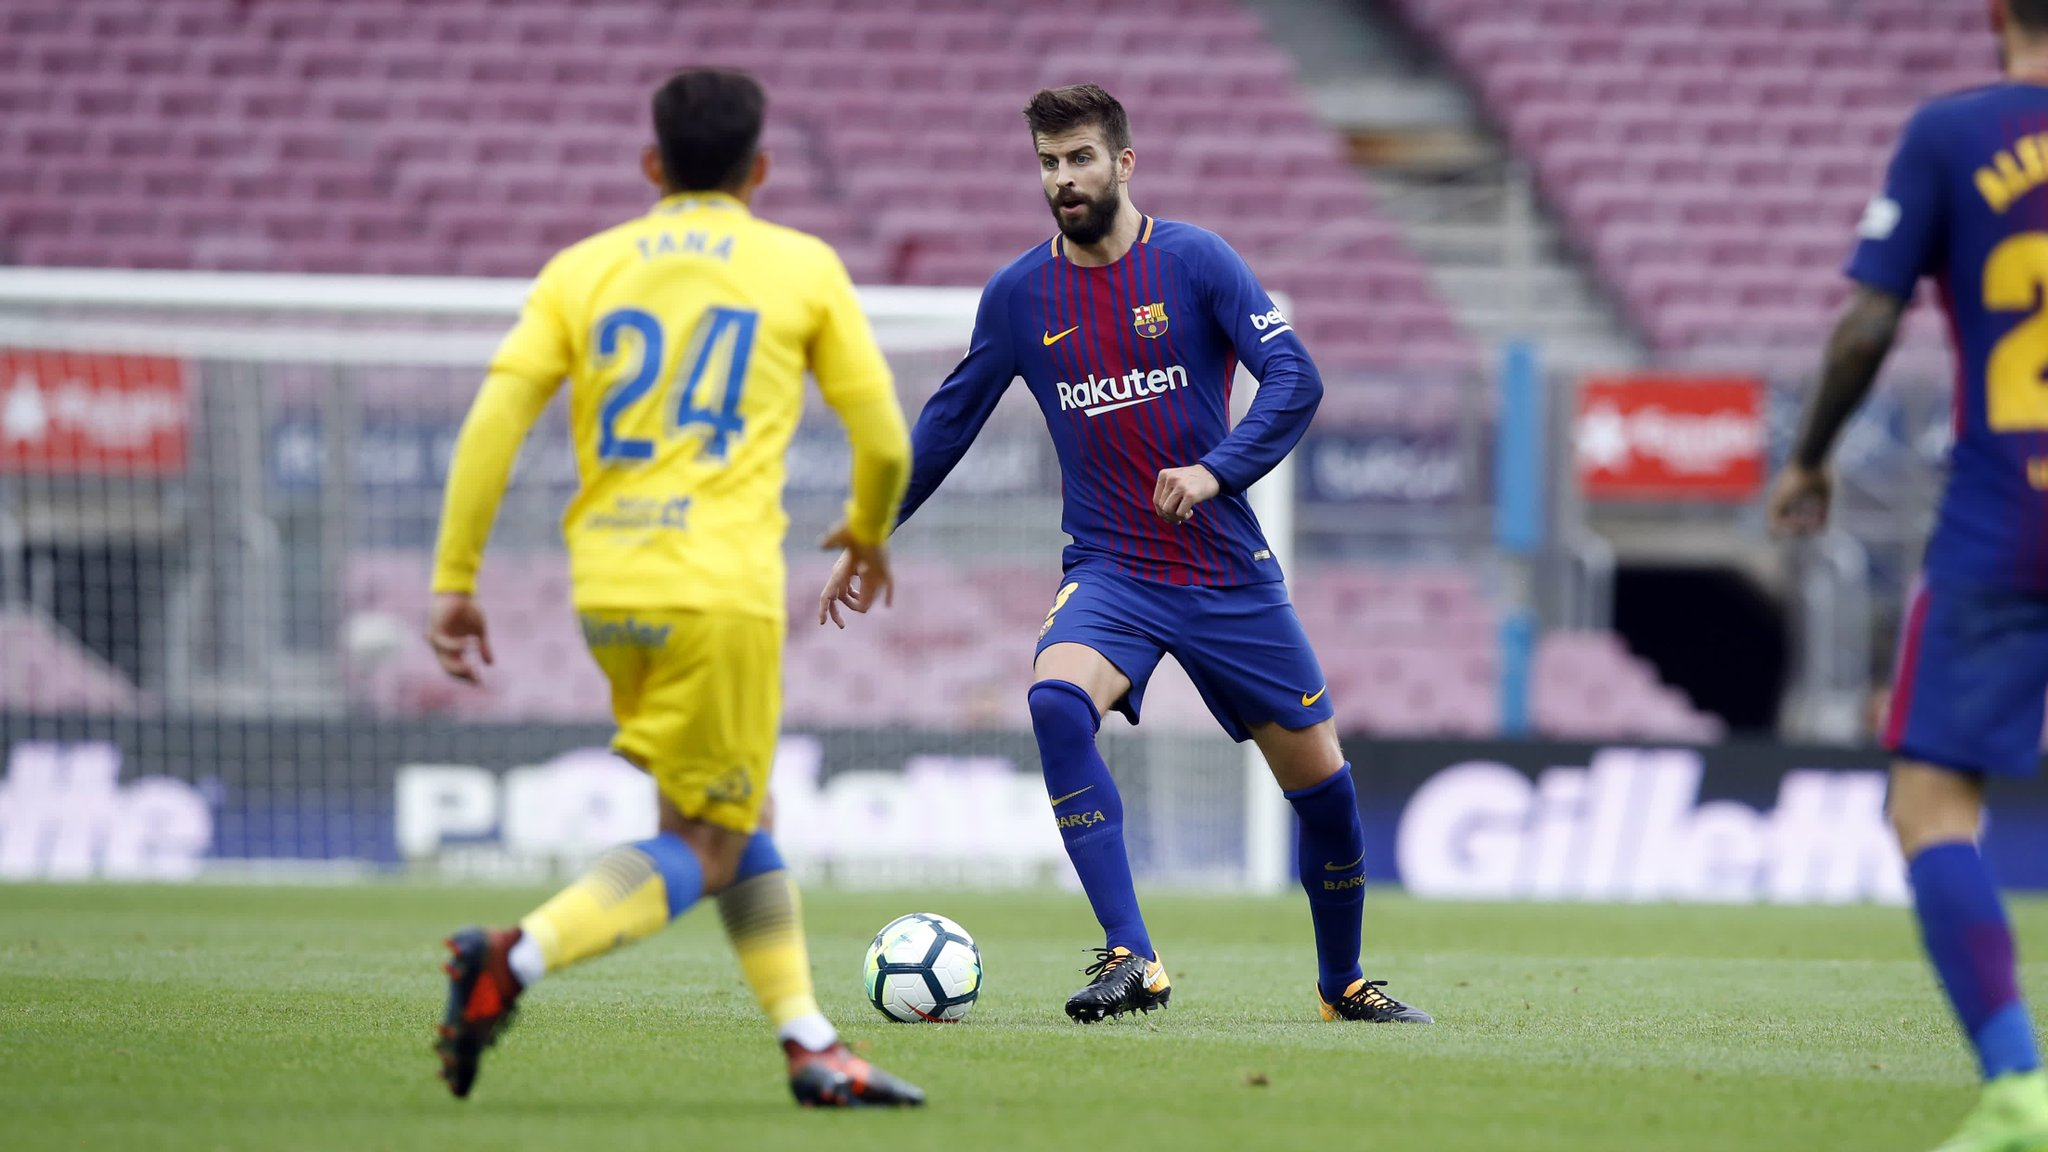 . @3gerardpique: 'It was the hardest game to play' https://t.co/GjlHuaGiTn